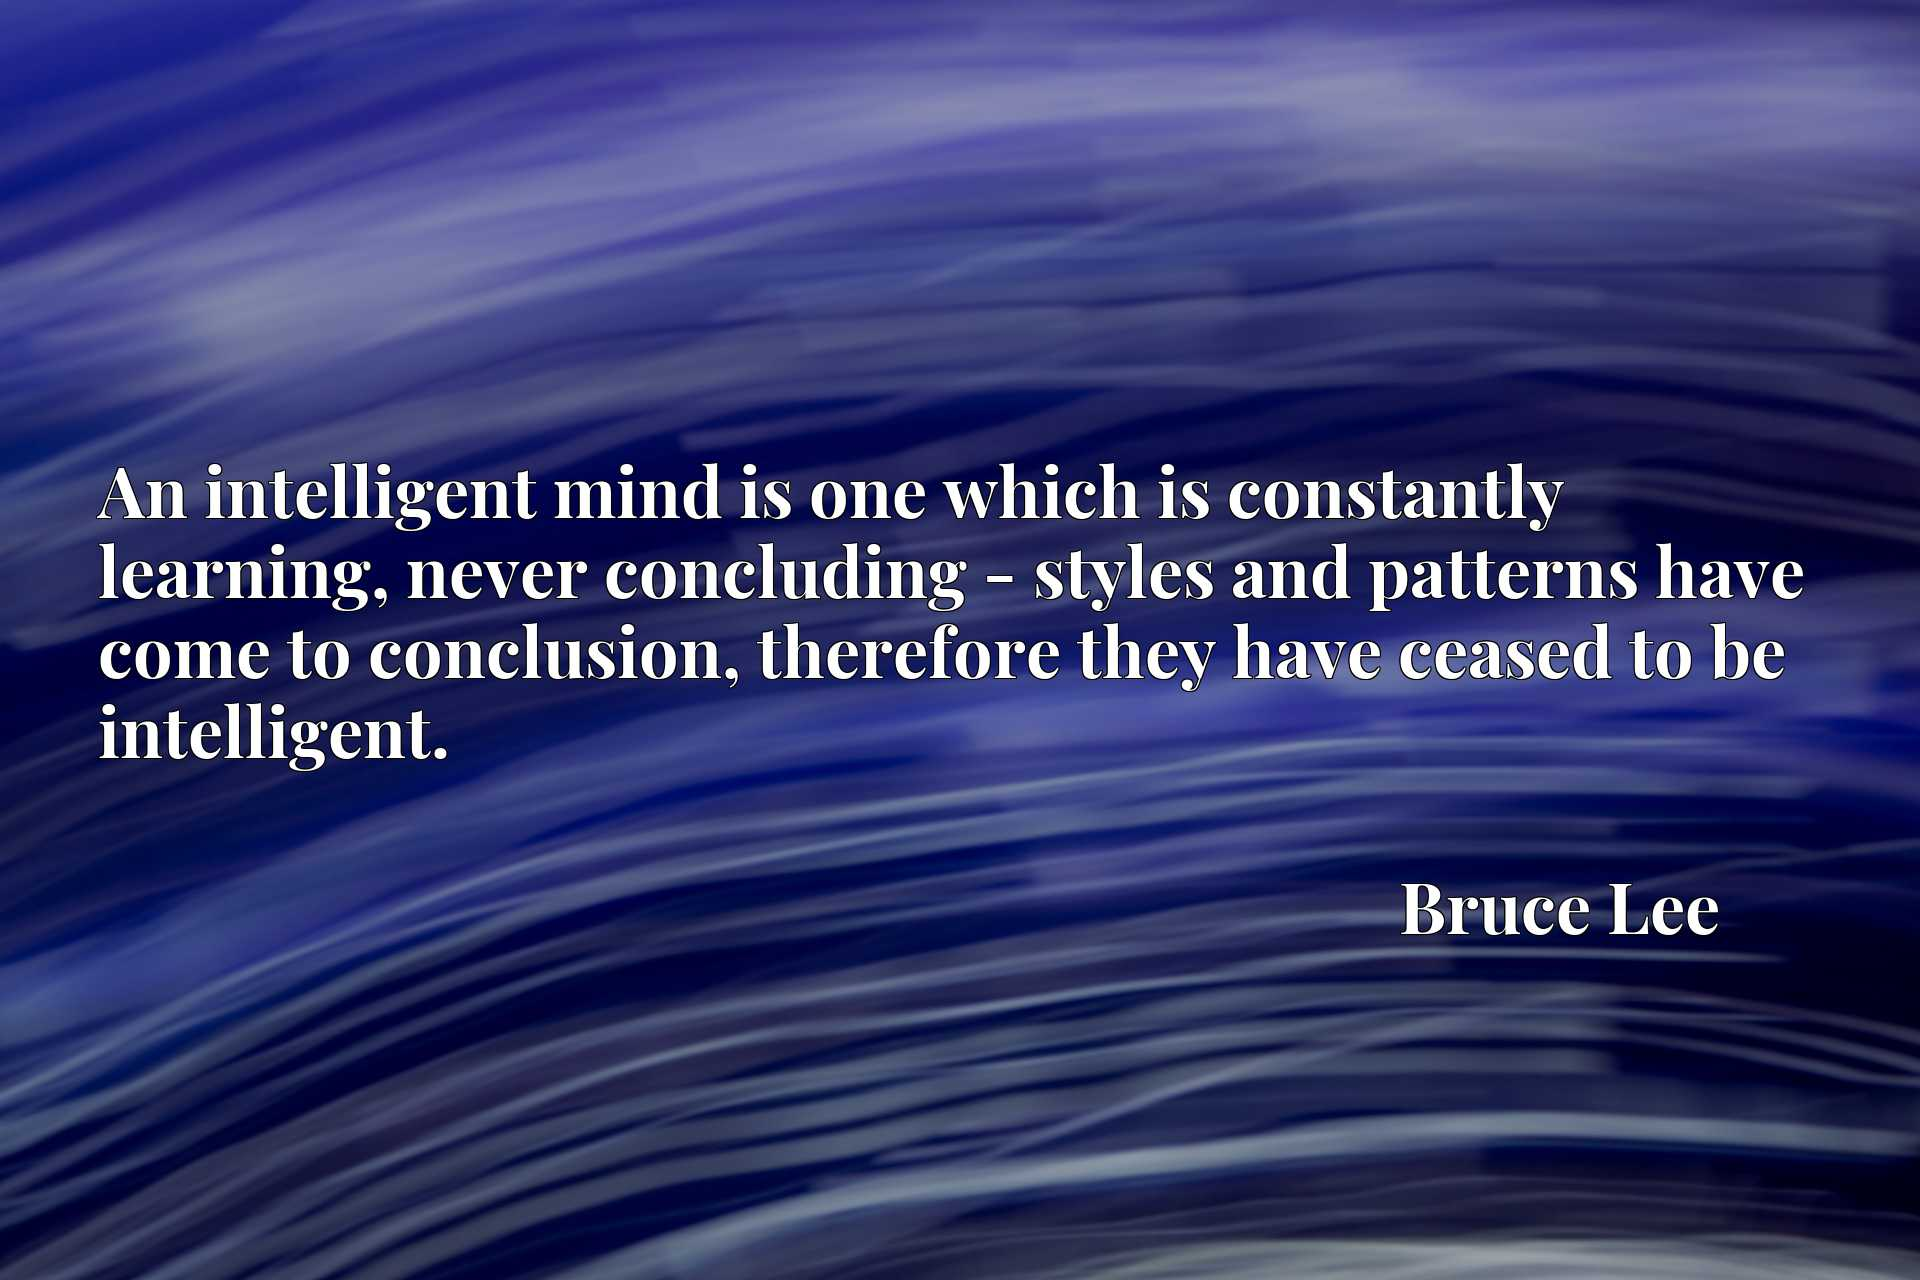 An intelligent mind is one which is constantly learning, never concluding - styles and patterns have come to conclusion, therefore they have ceased to be intelligent.